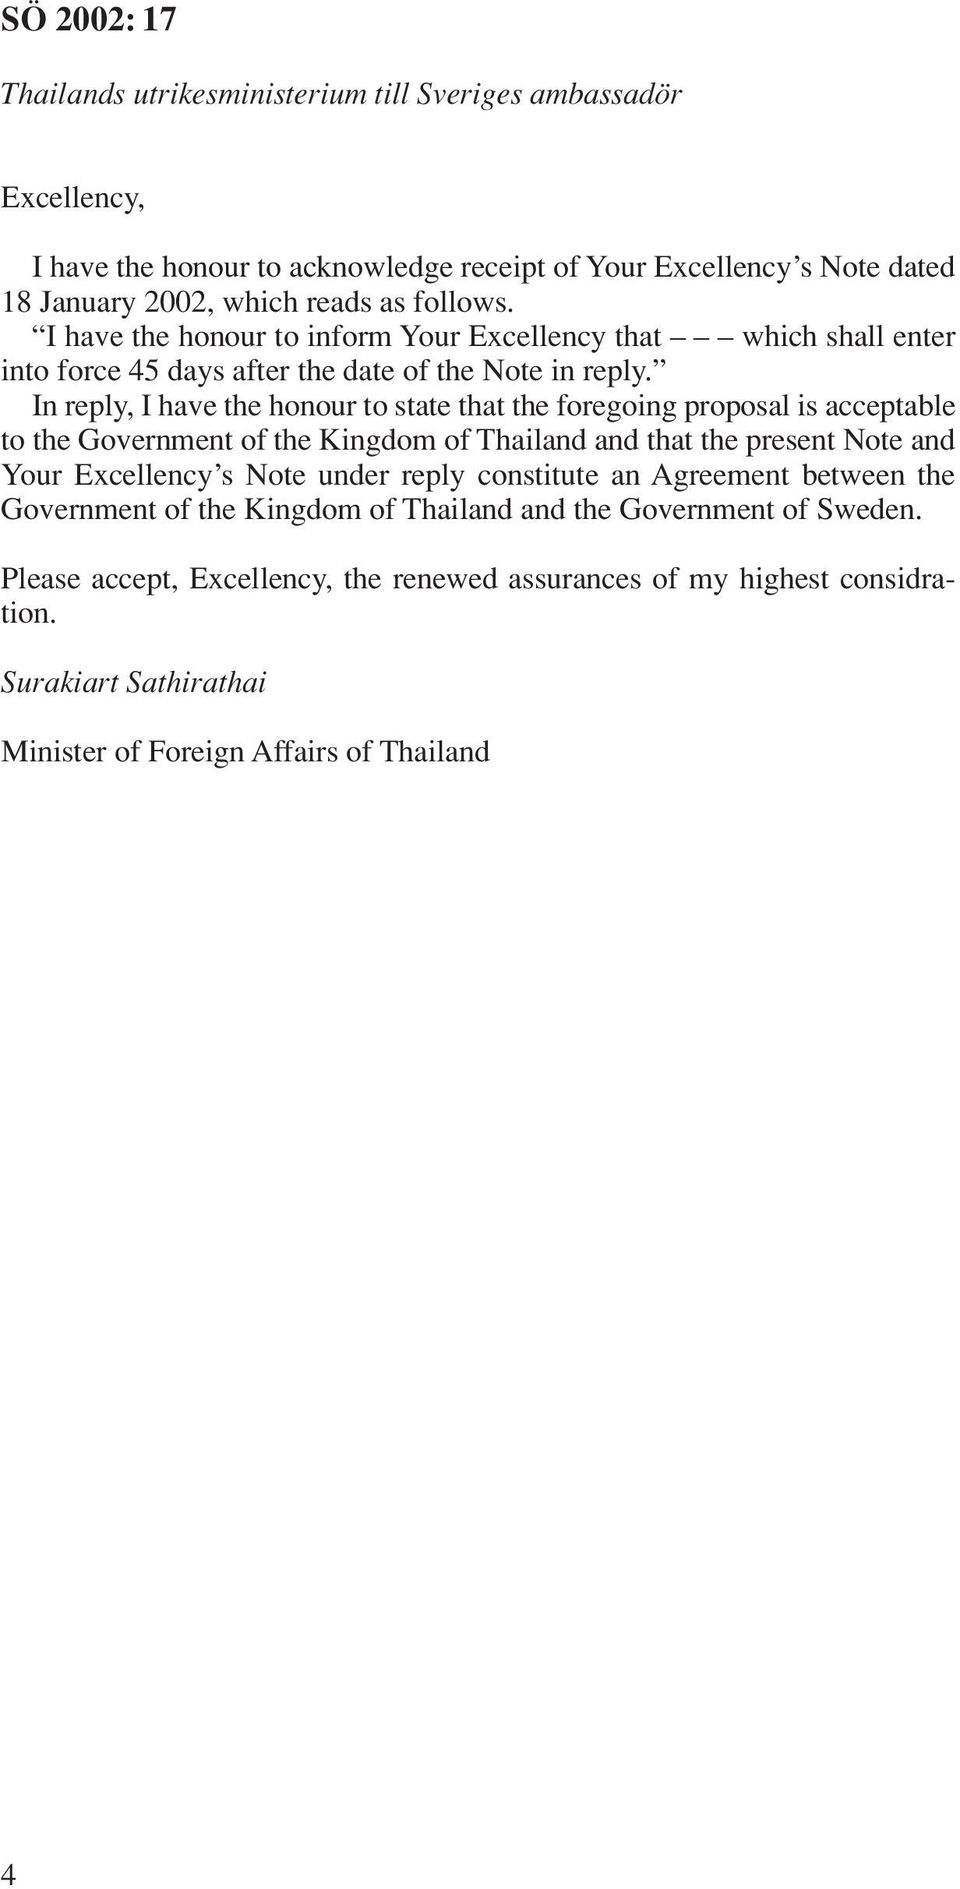 In reply, I have the honour to state that the foregoing proposal is acceptable to the Government of the Kingdom of Thailand and that the present Note and Your Excellency s Note under